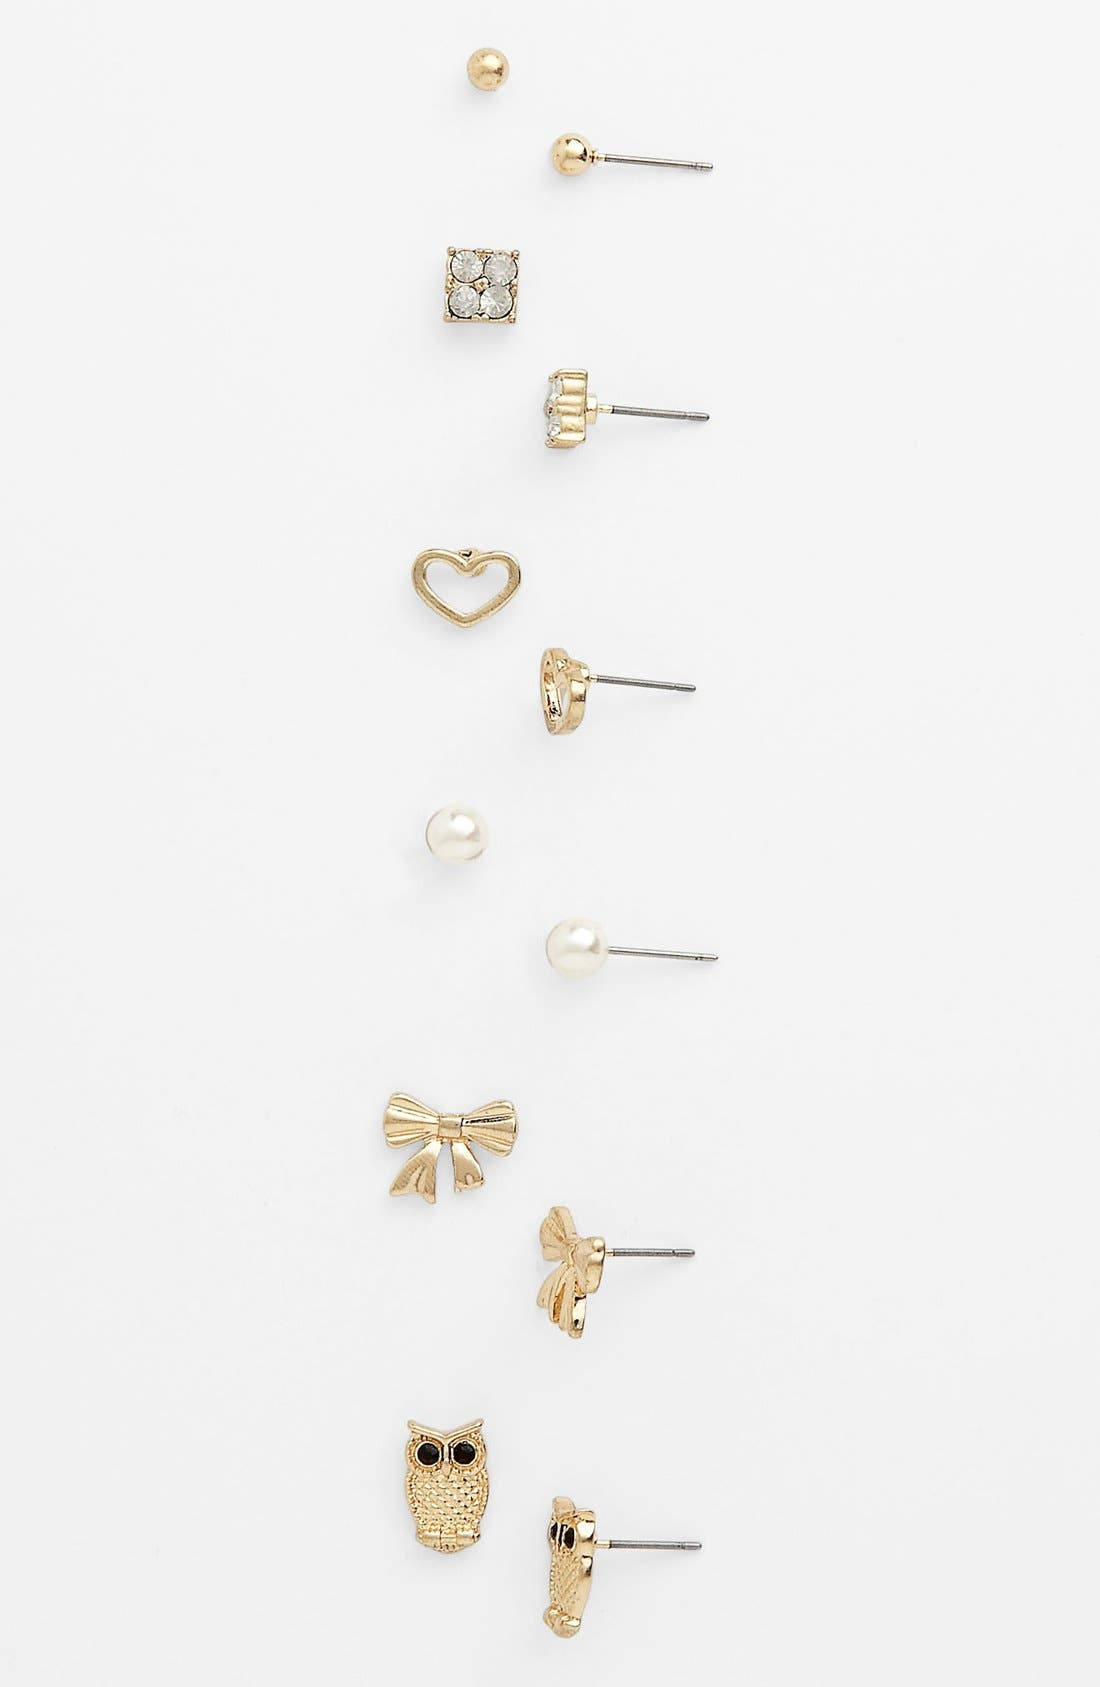 Alternate Image 1 Selected - Carole Stud Earrings (Set of 6)